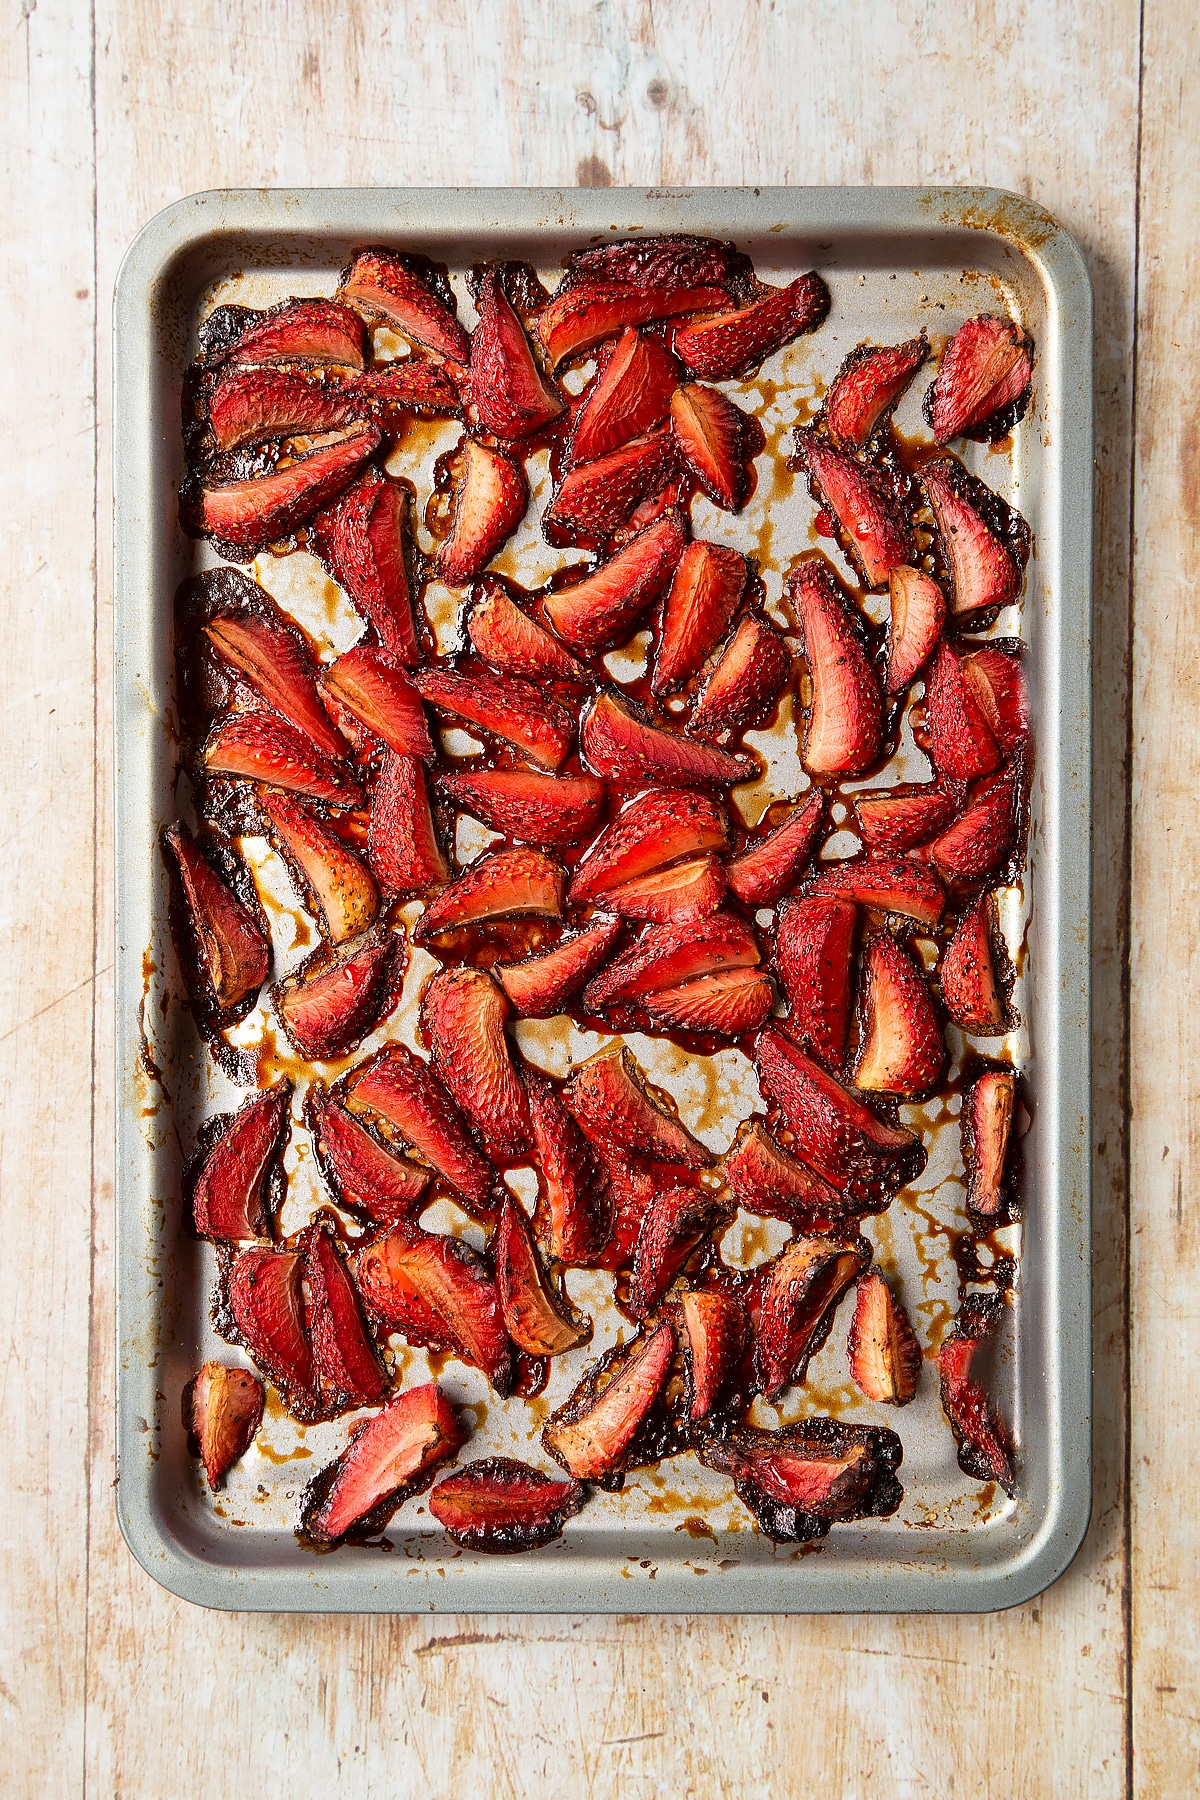 Roasted balsamic strawberries on a non-stick tray.